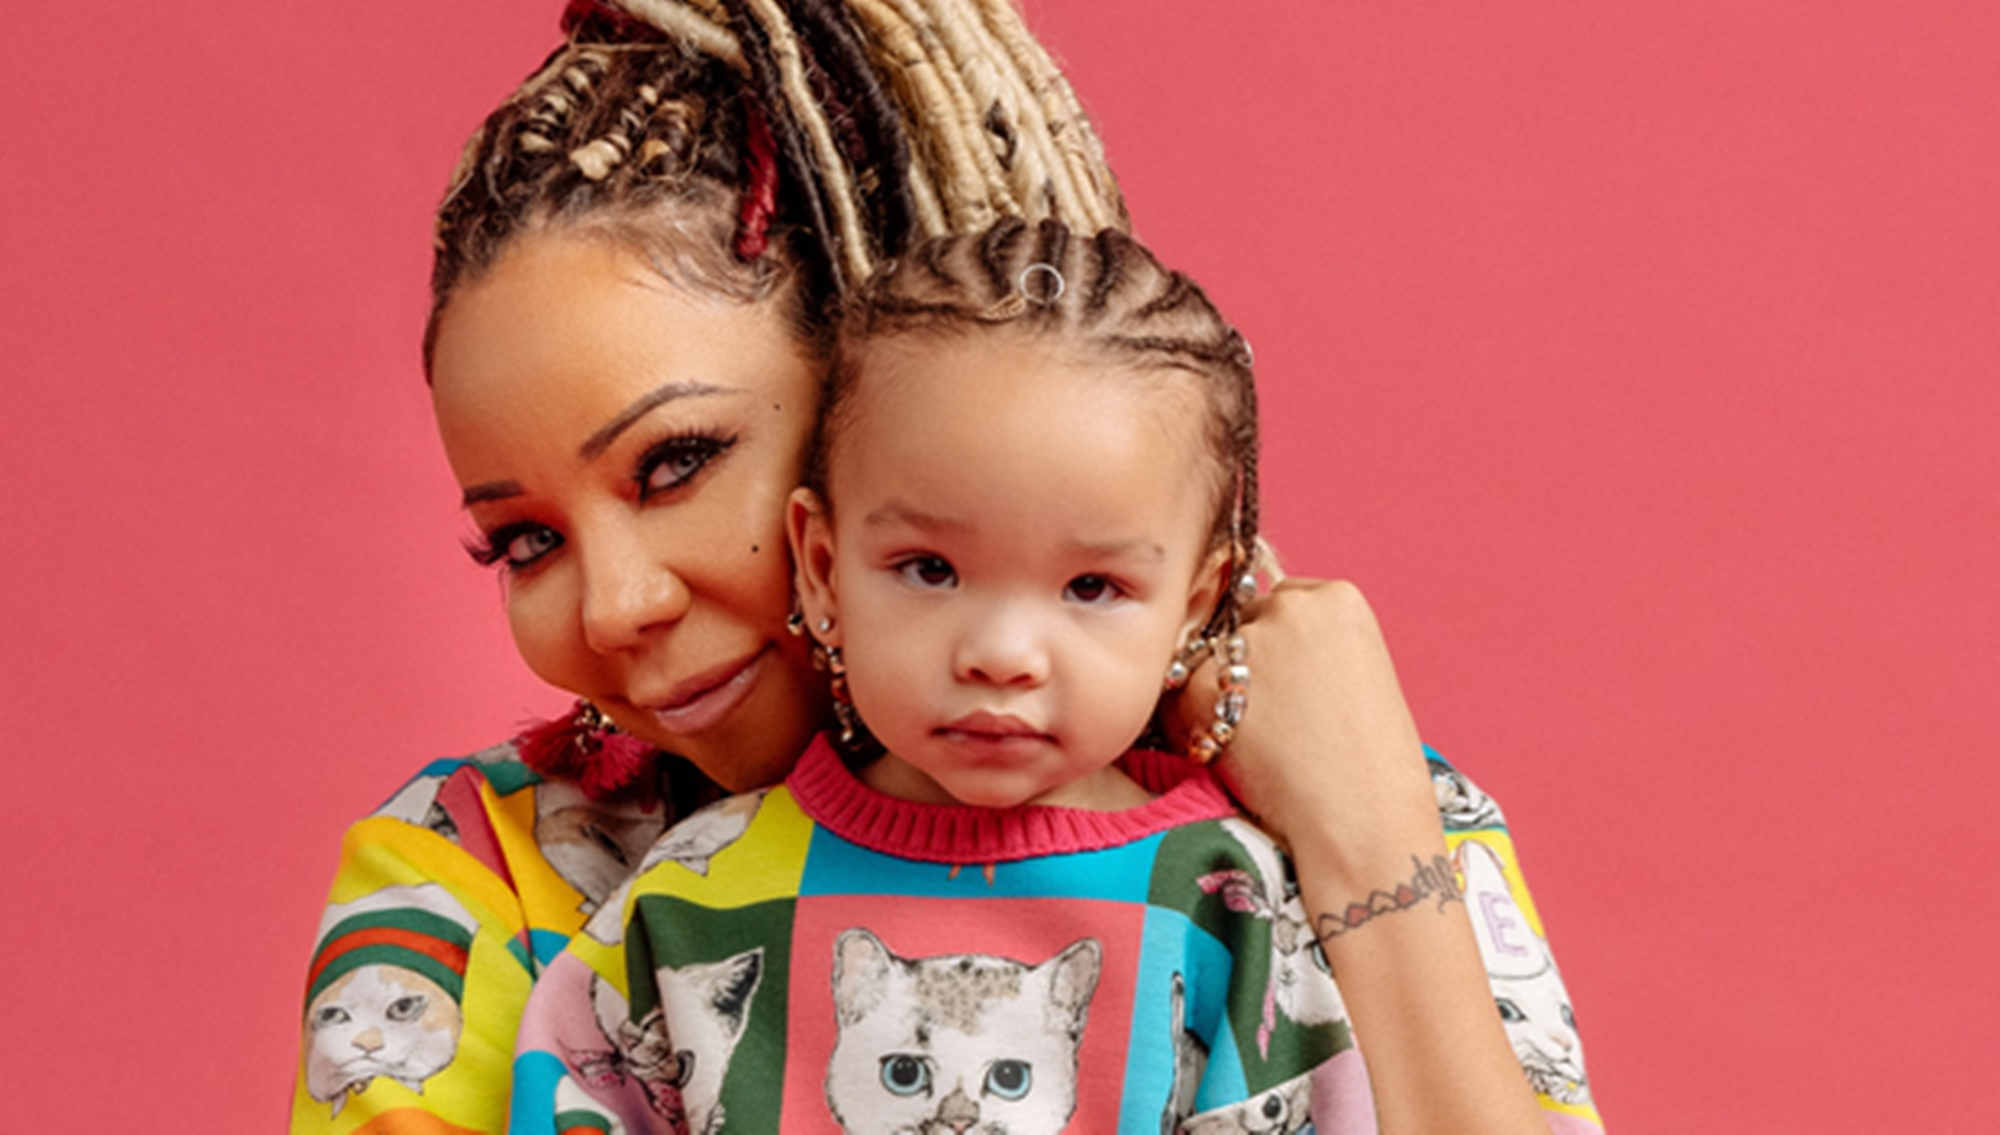 tiny-harris-tells-fans-to-tune-into-heiress-harris-youtube-channel-check-out-the-video